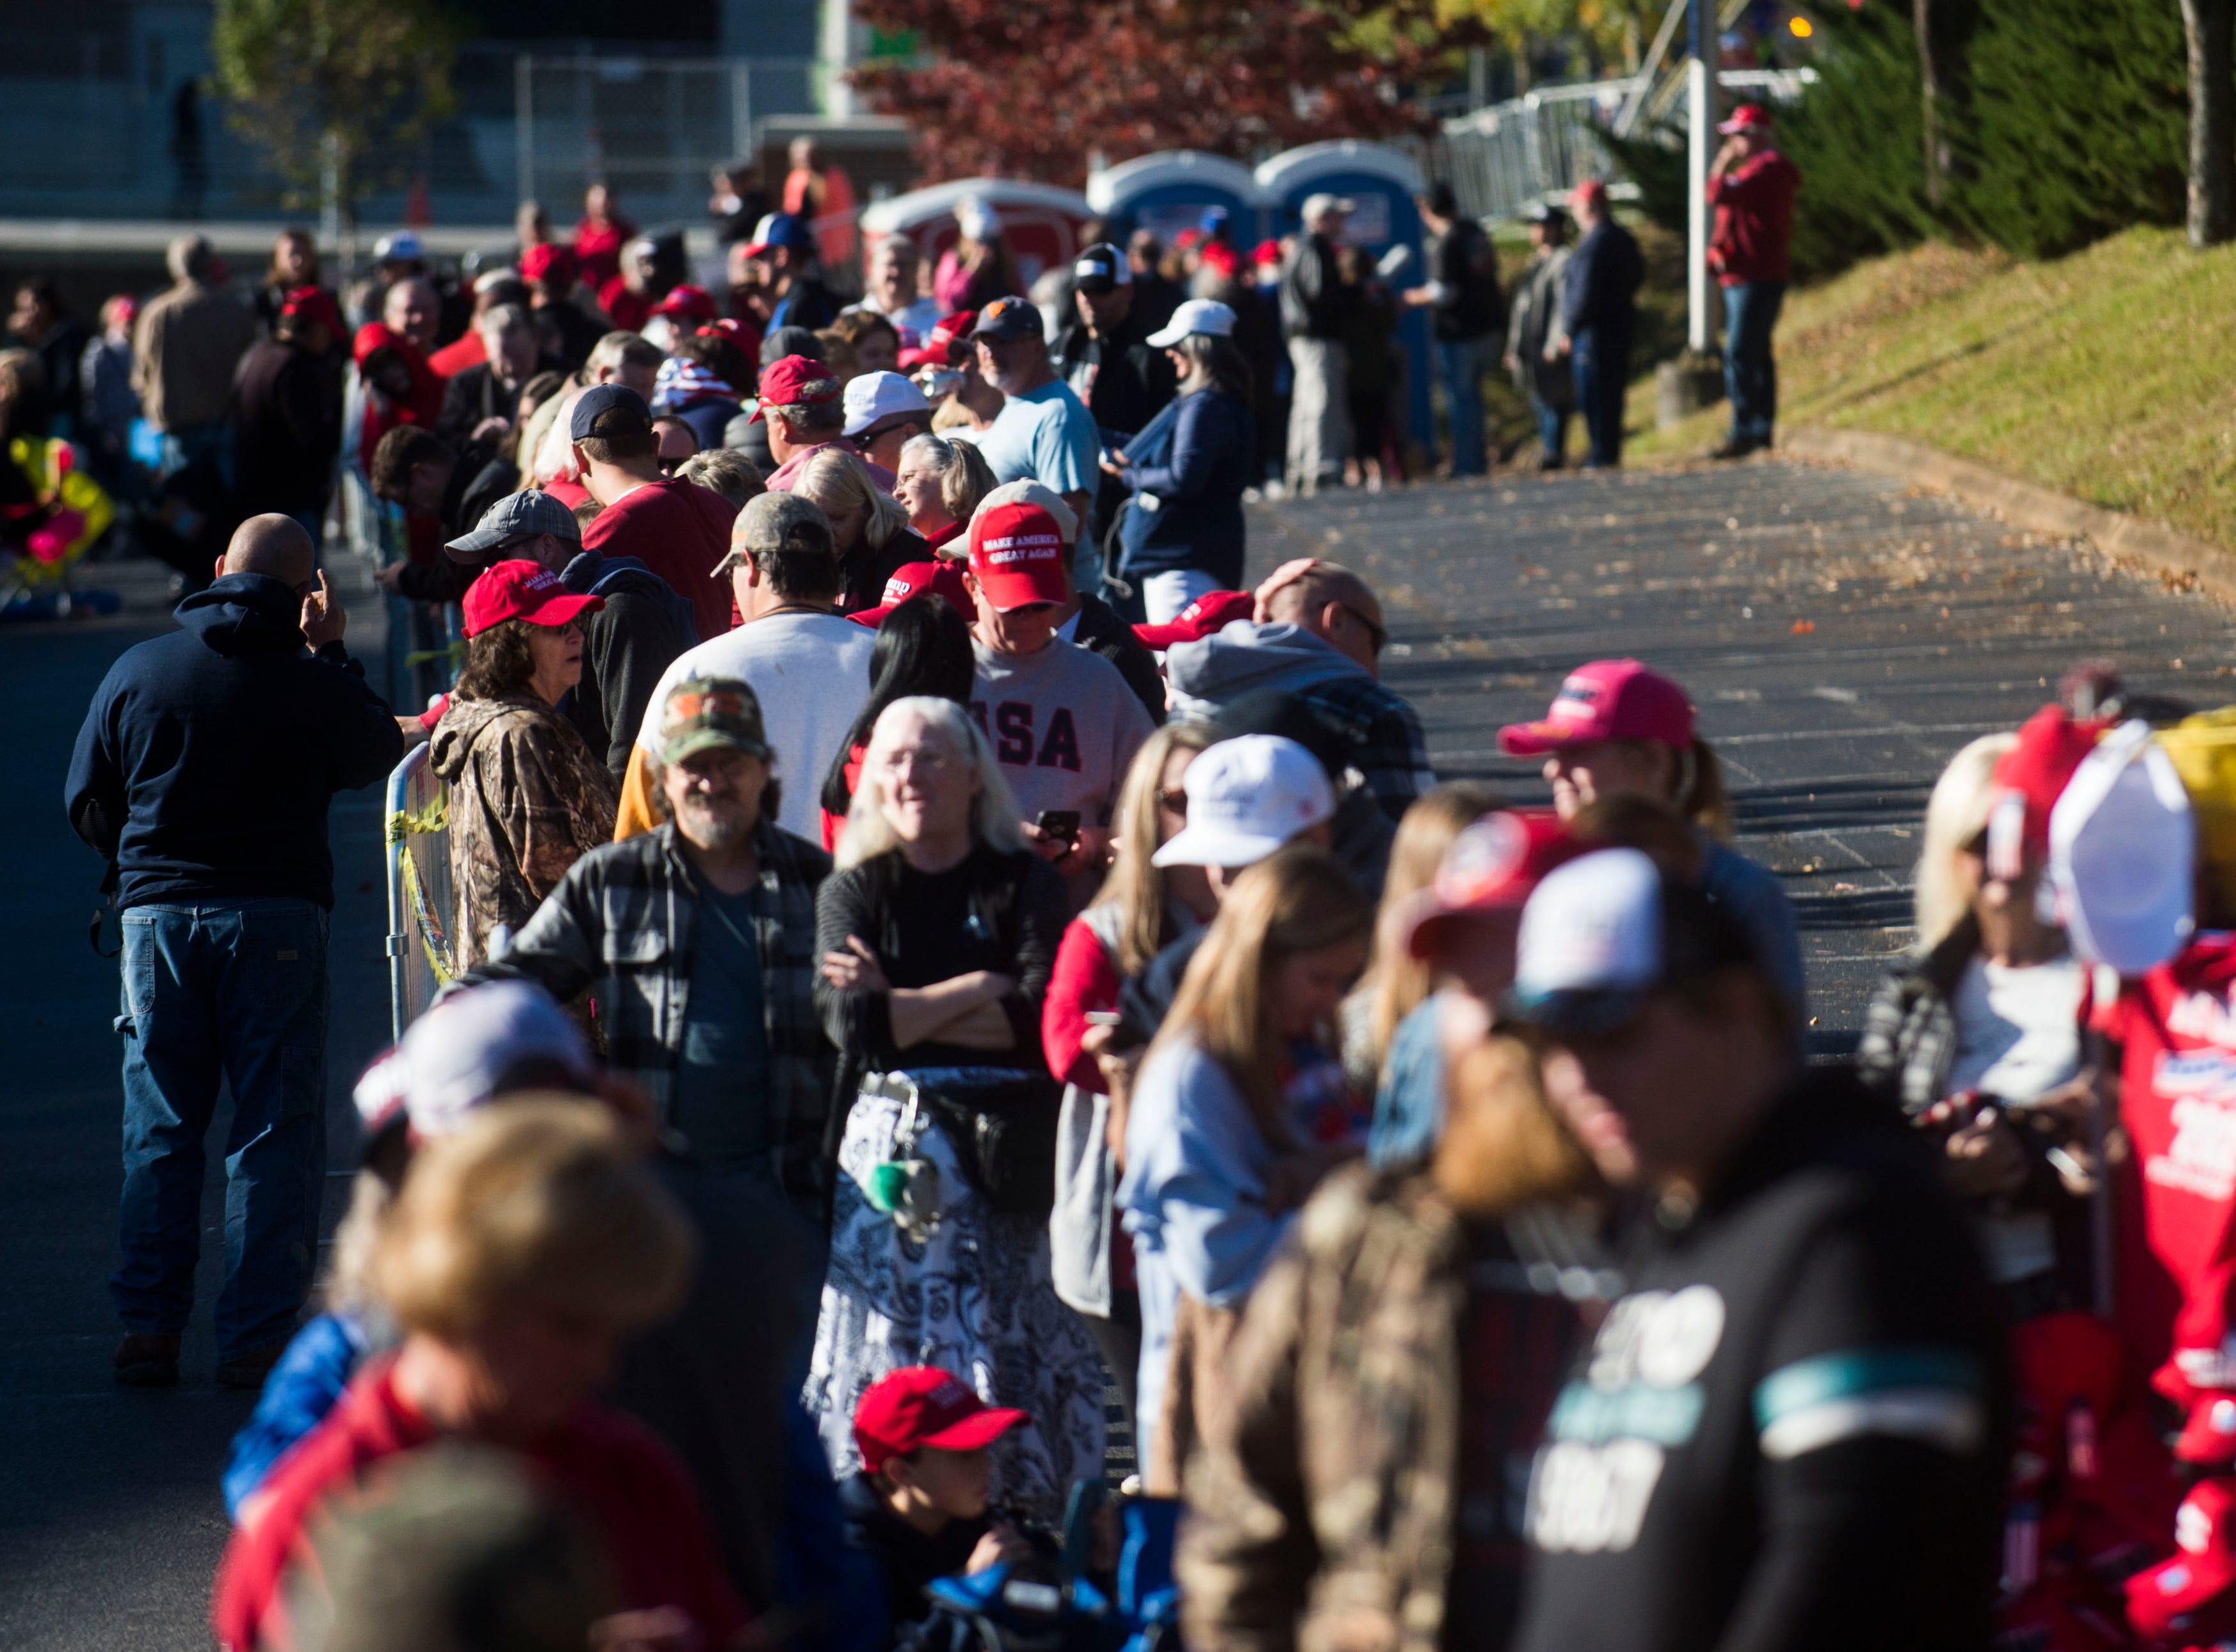 Trump supporters wait in line before a Donald Trump rally in support of U.S. Rep. Marsha Blackburn for the U.S. Senate at McKenzie Arena in Chattanooga, Sunday, Nov. 4, 2018.